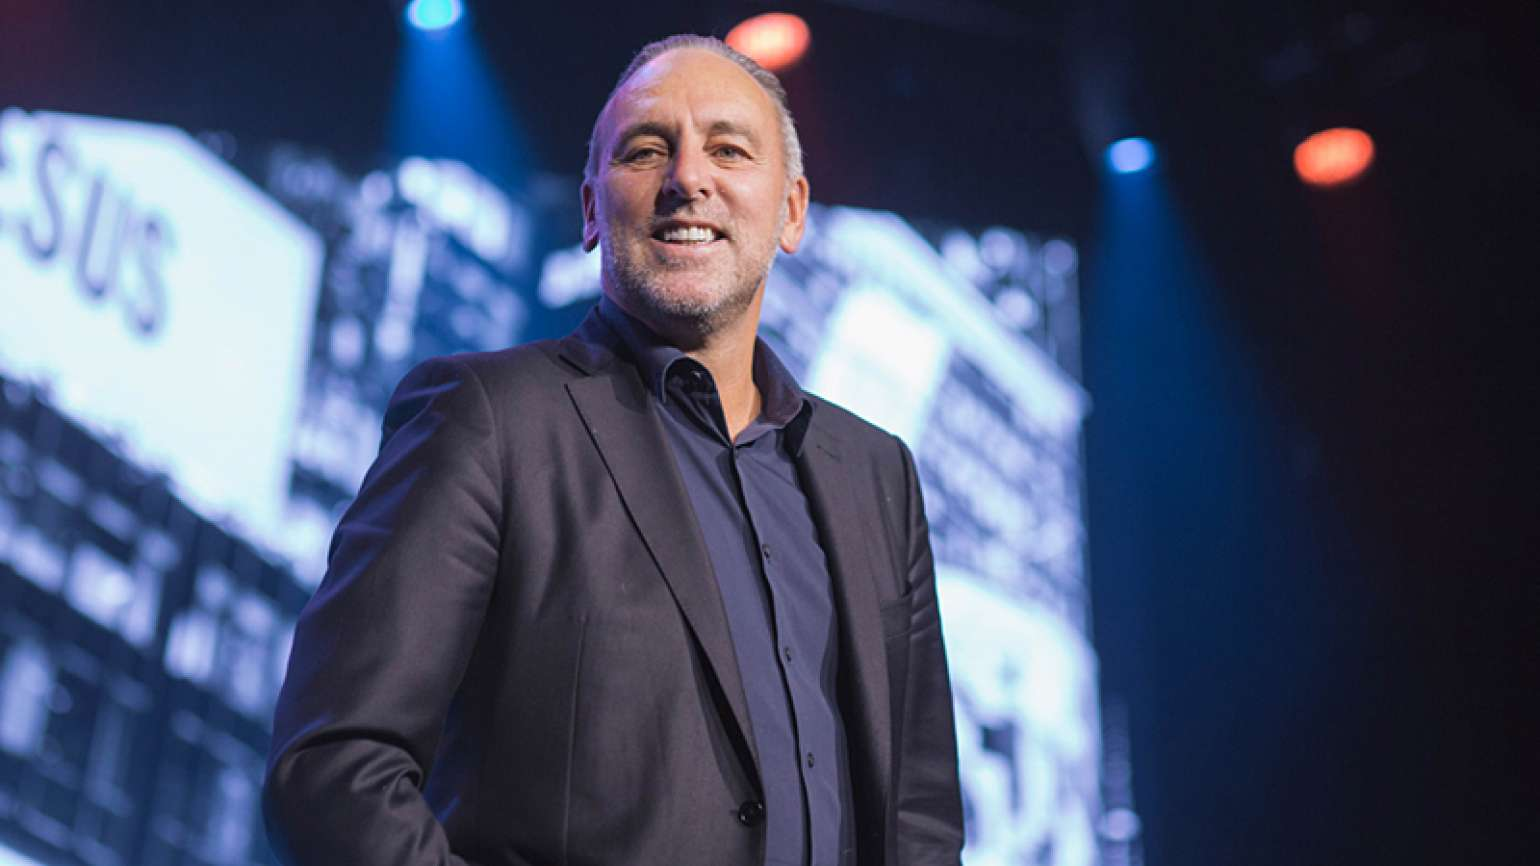 Pastor Brian Houston of Hillsong Church, Decision Making, Guideposts